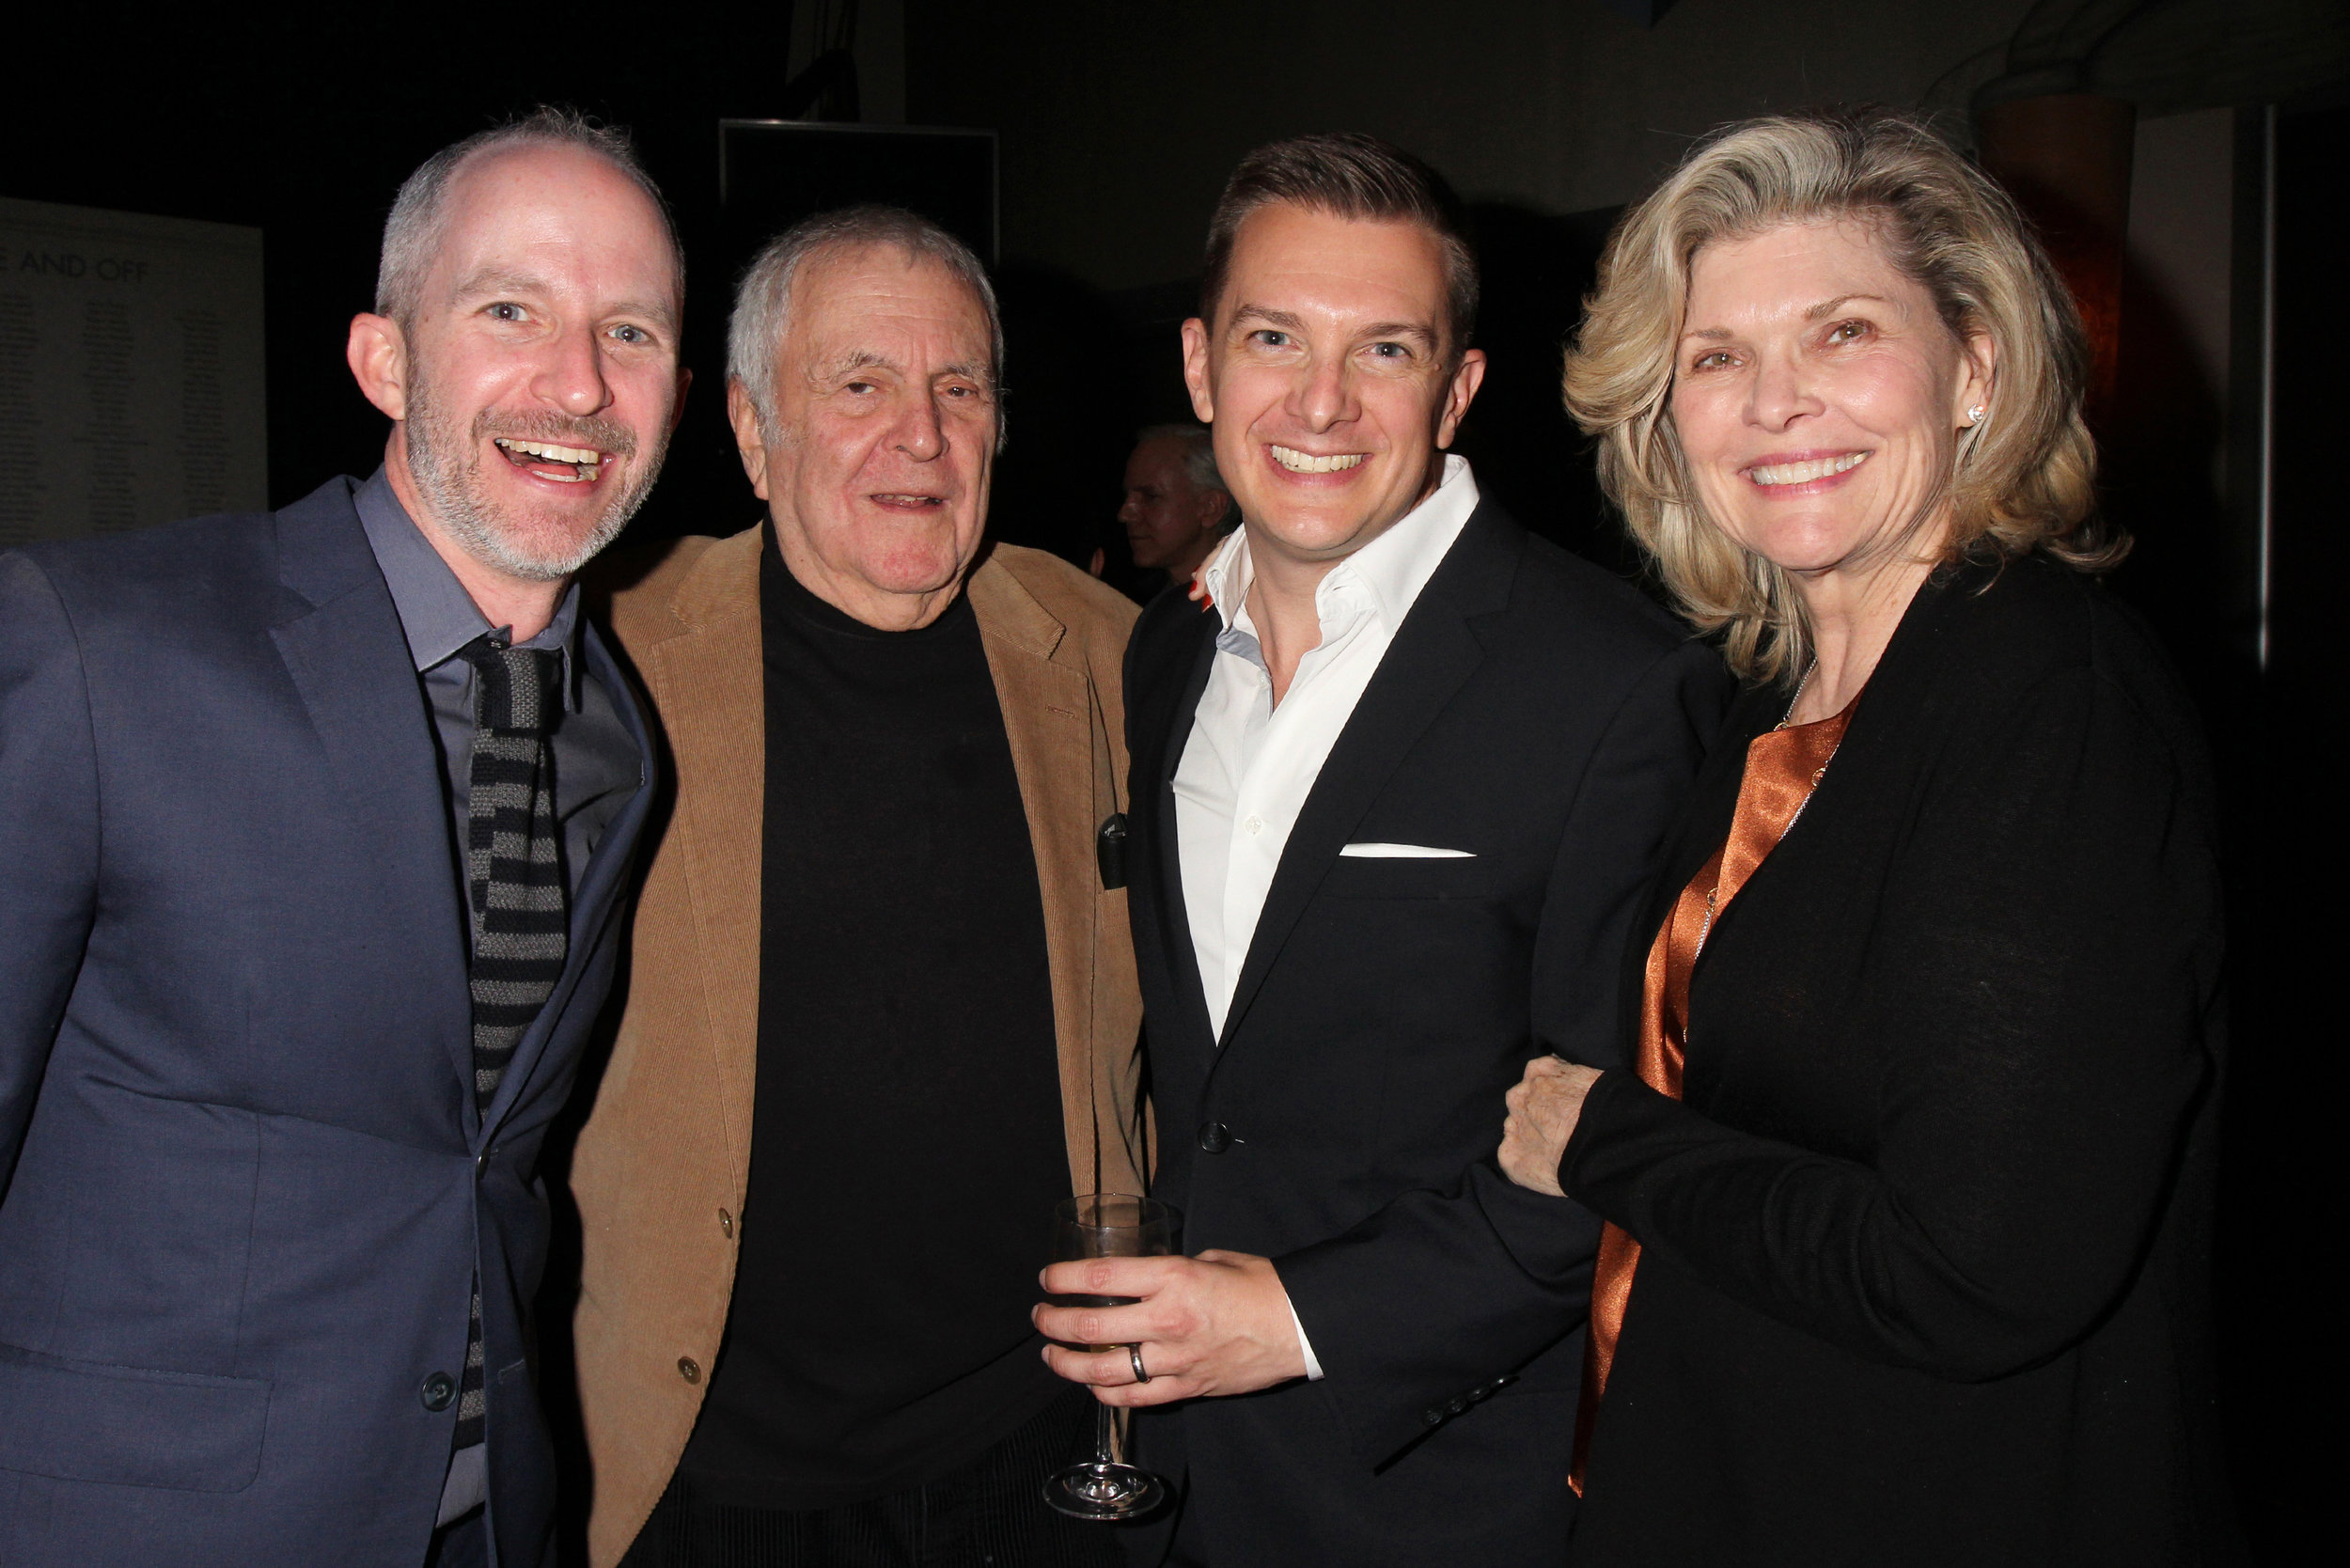 Two excited guys meeting John Kander & Debra Monk